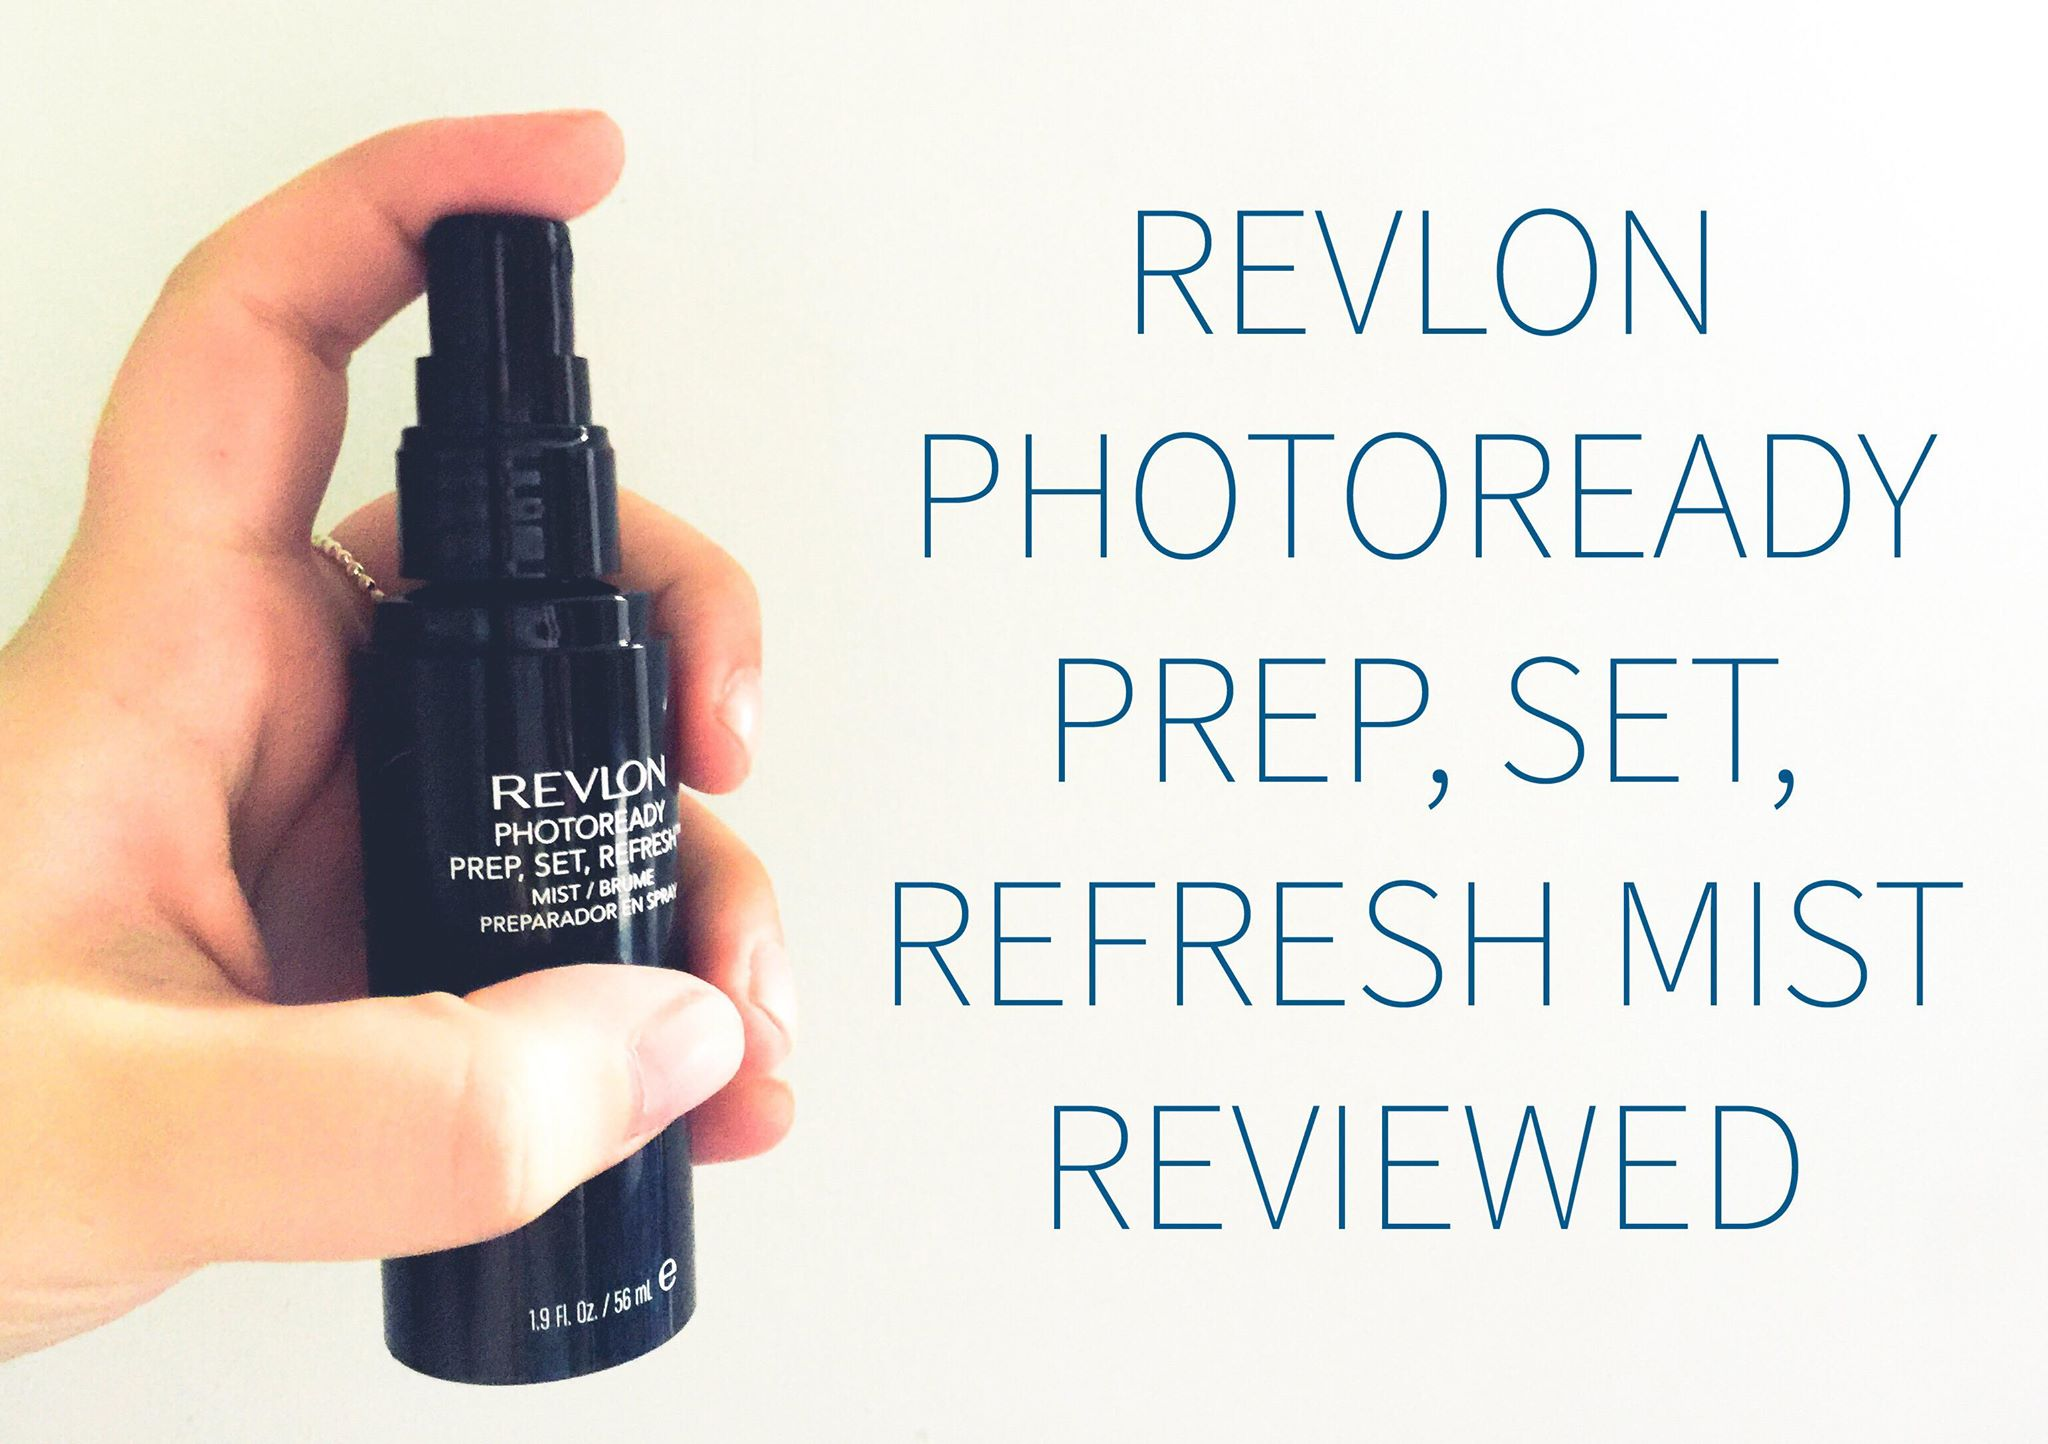 revlon prep set refresh mist reviewed